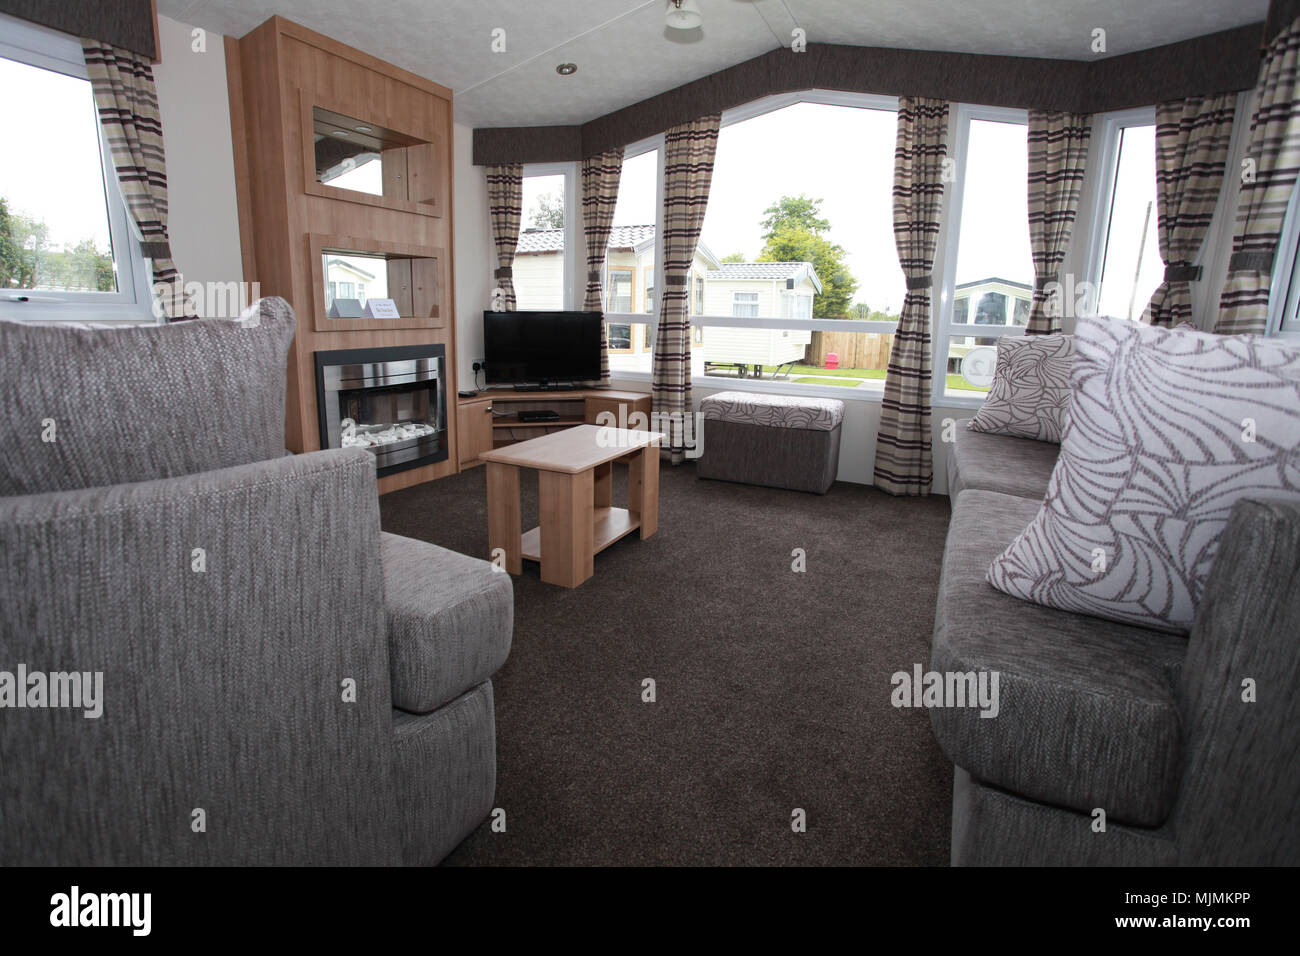 permanent caravan sites for Gypsy and Traveller communities Stock